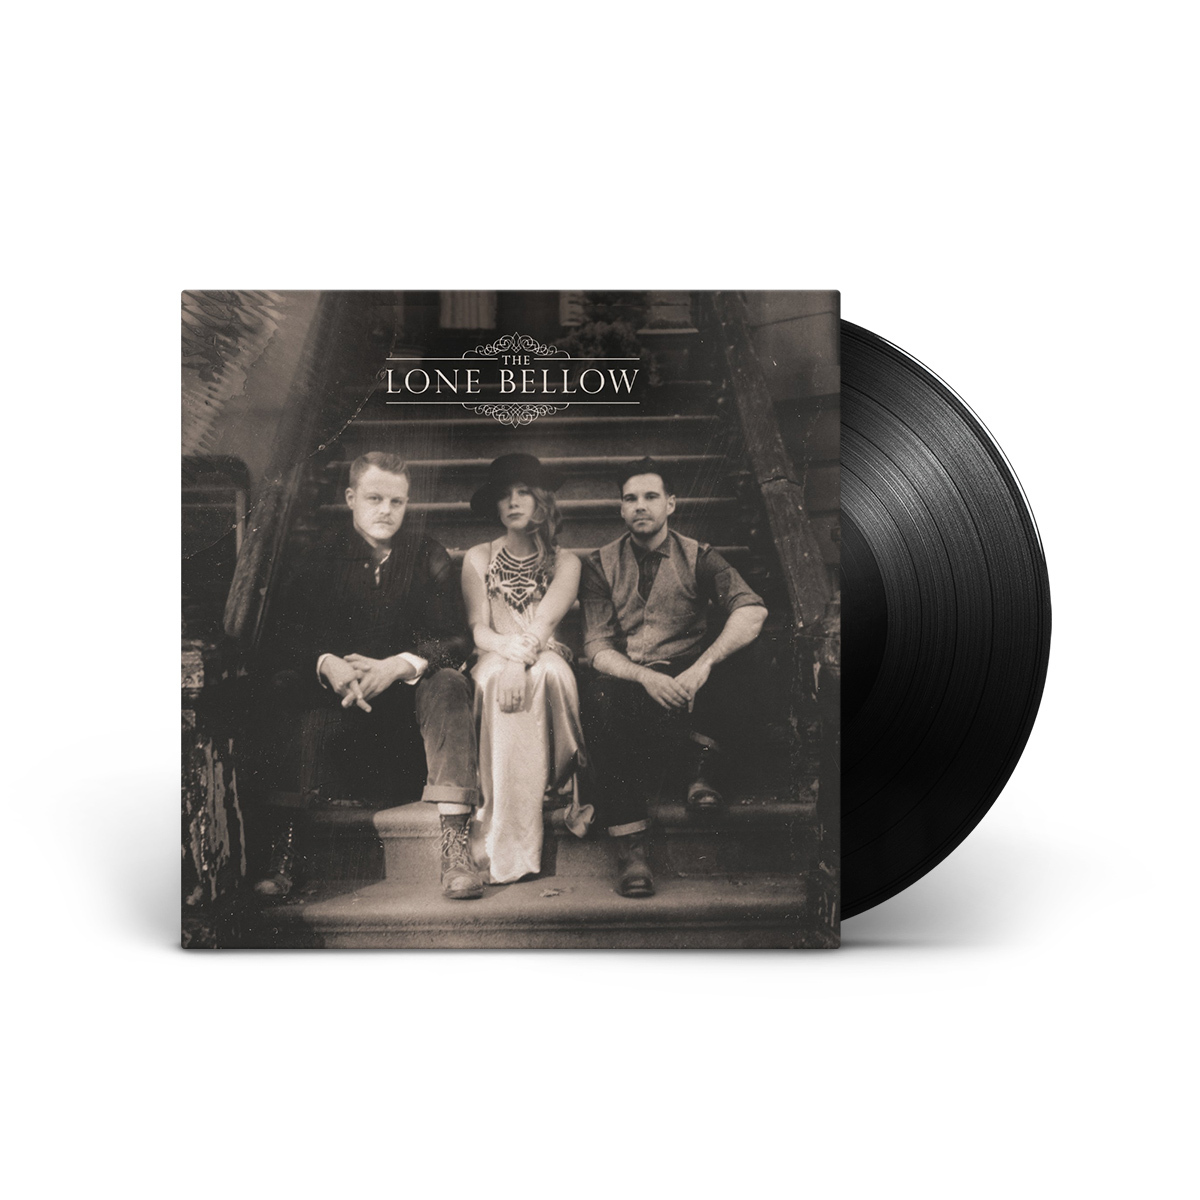 The Lone Bellow LP